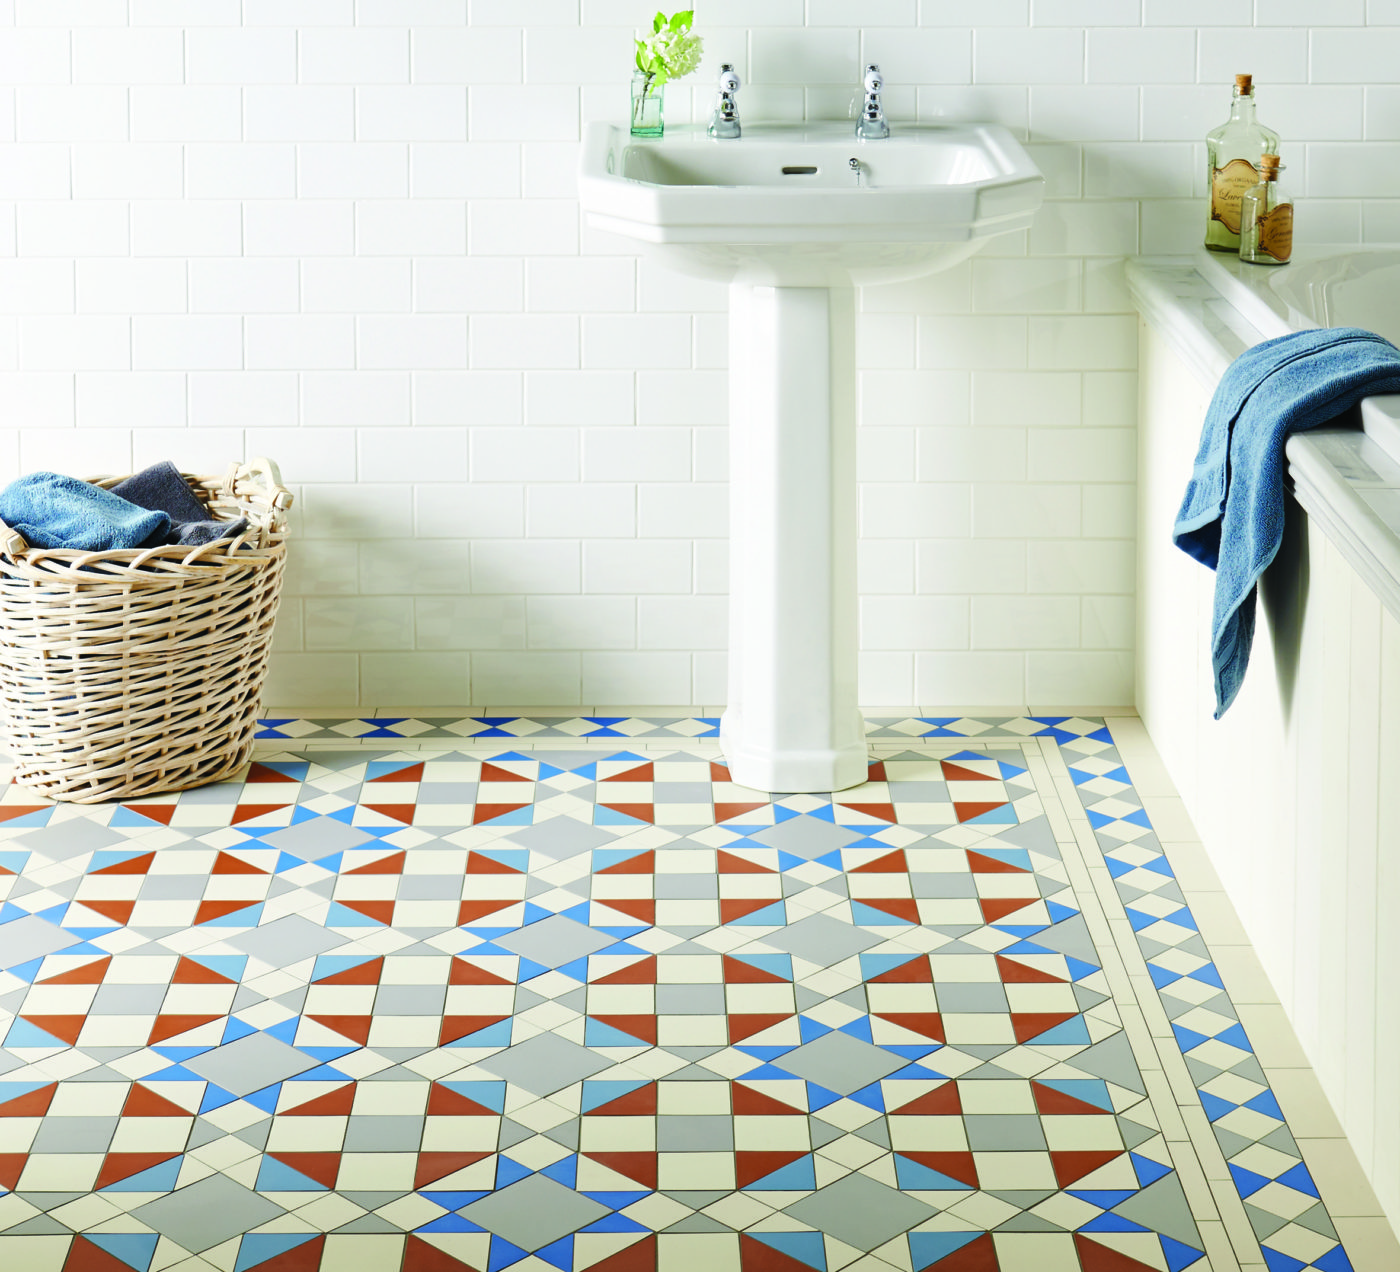 Victorian Bathroom Floor Tiles. Eltham Pattern With Modified Kingsley  Border In Grey, Red,